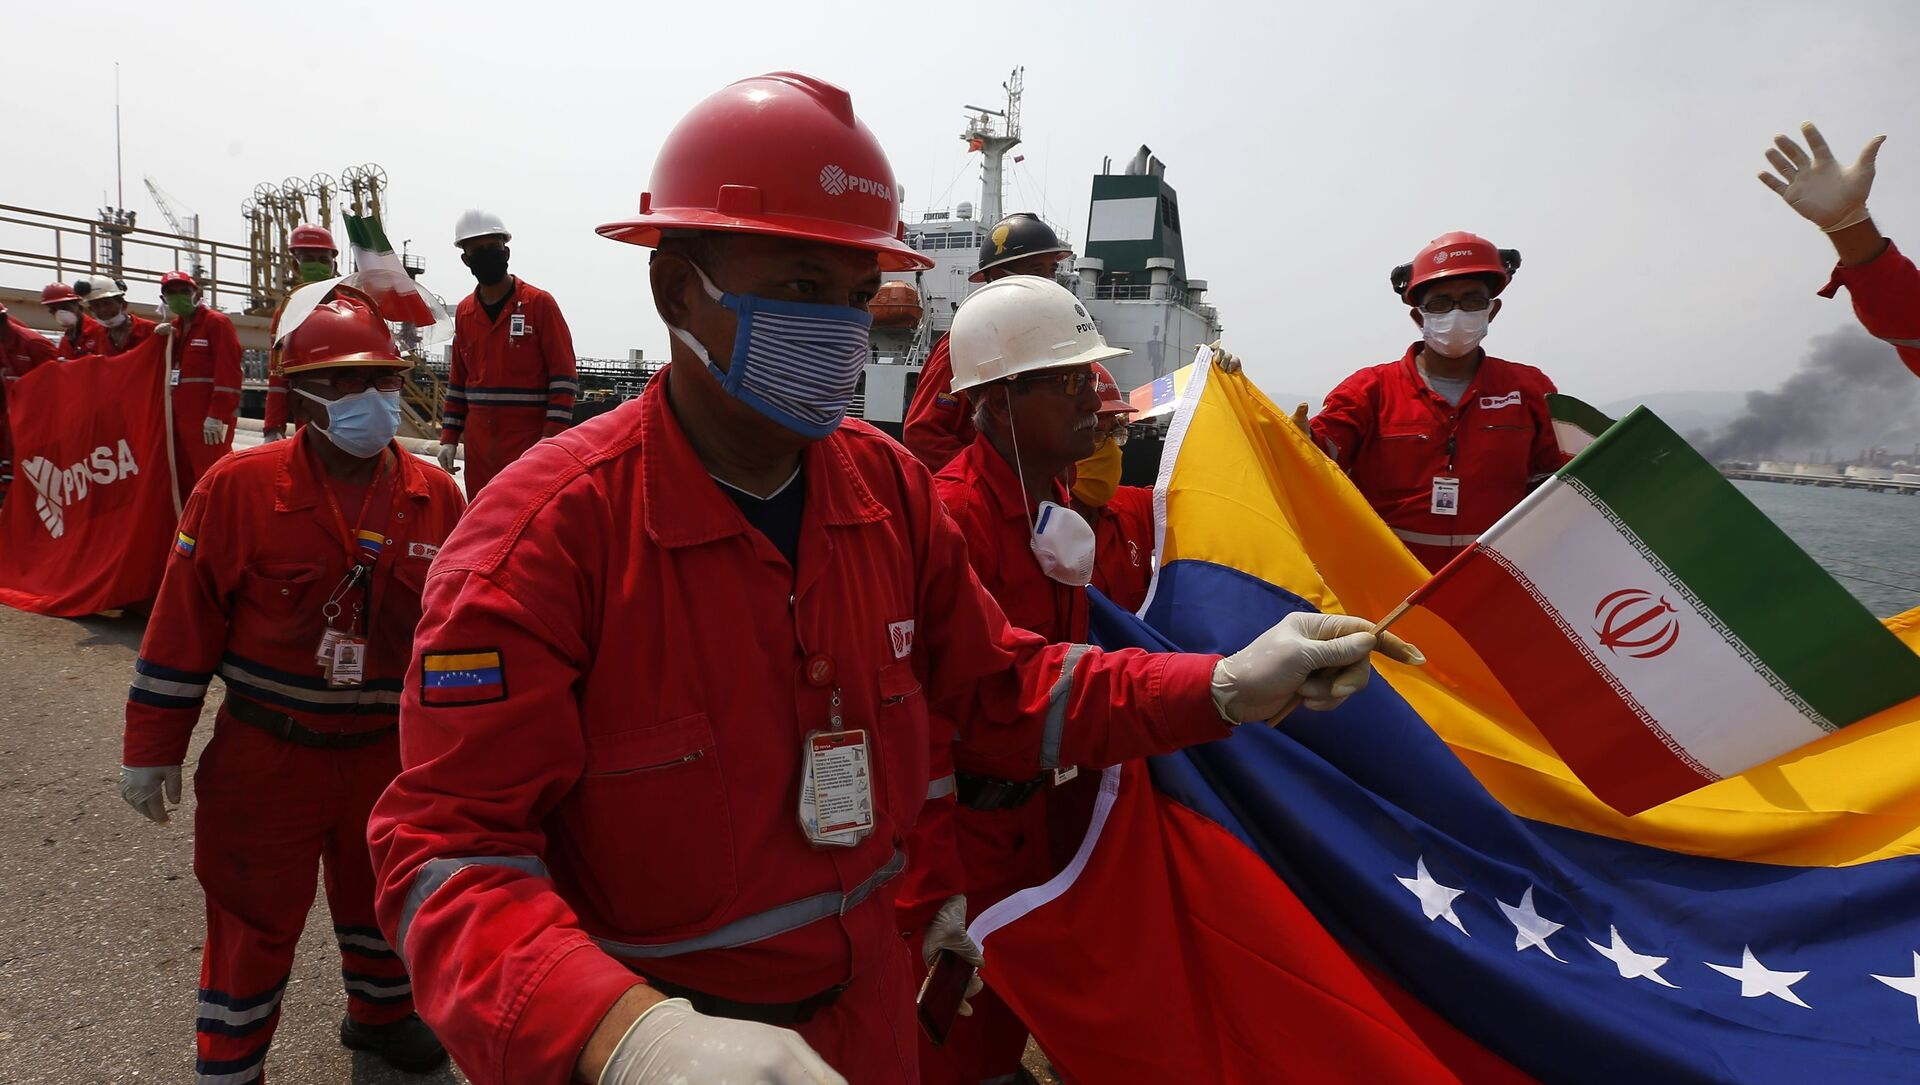 A Venezuelan oil worker holding a small Iranian flag attends a ceremony for the arrival of Iranian oil tanker Fortune at the El Palito refinery near Puerto Cabello, Venezuela, Monday, May 25, 2020 - Sputnik International, 1920, 24.06.2021